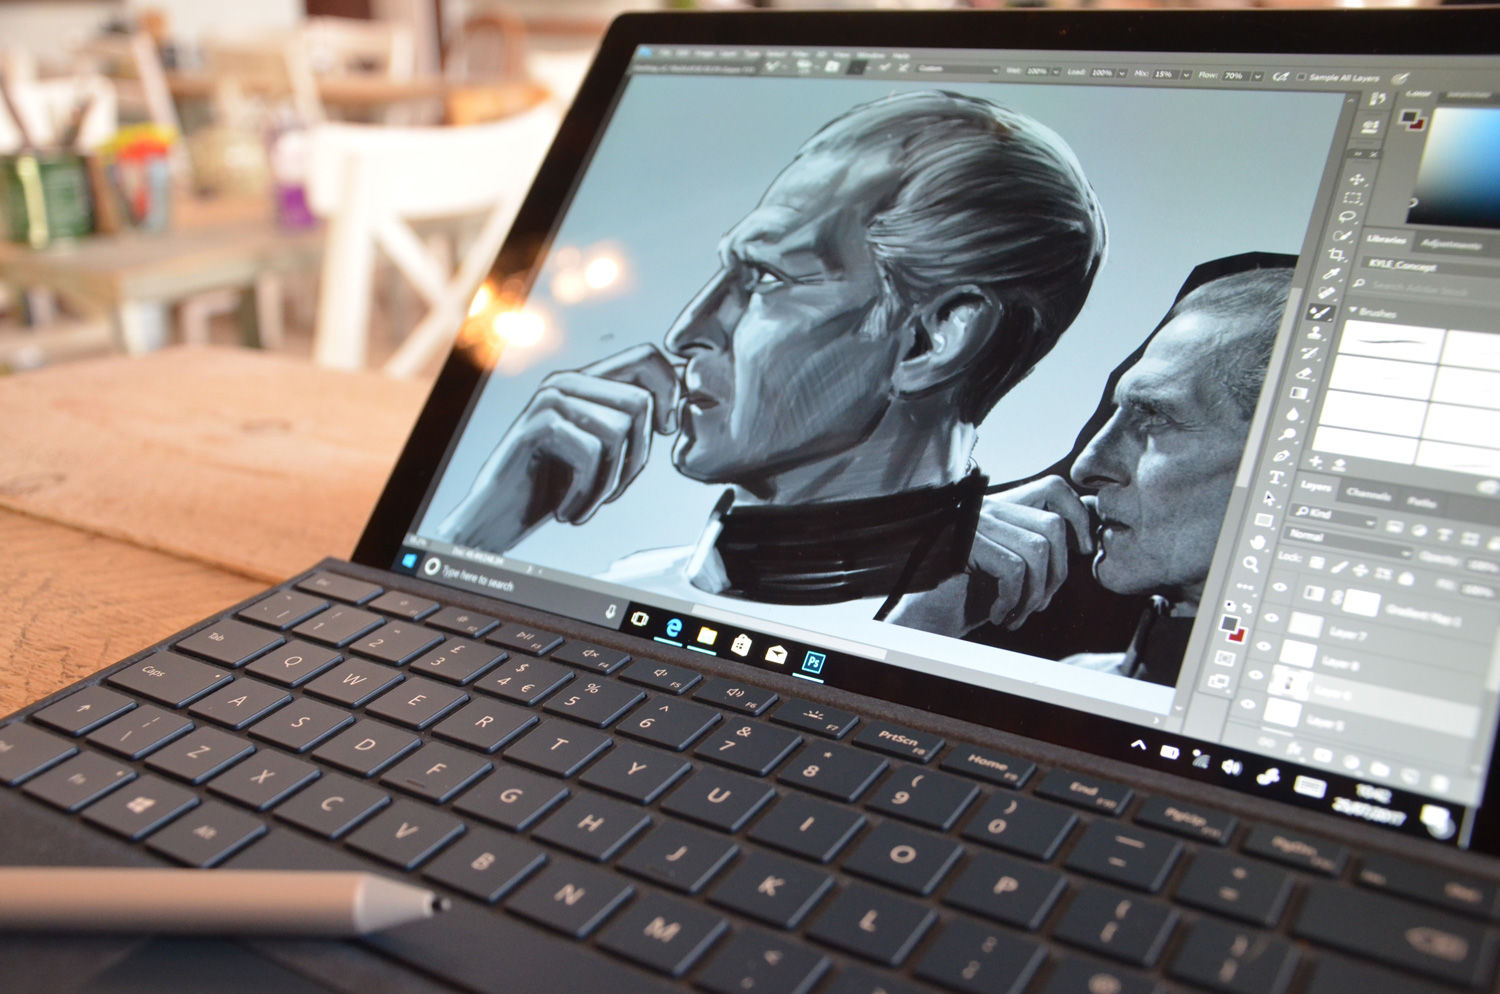 Microsoft Surface Pro 2017 – the artist's review - Review - Digital Arts